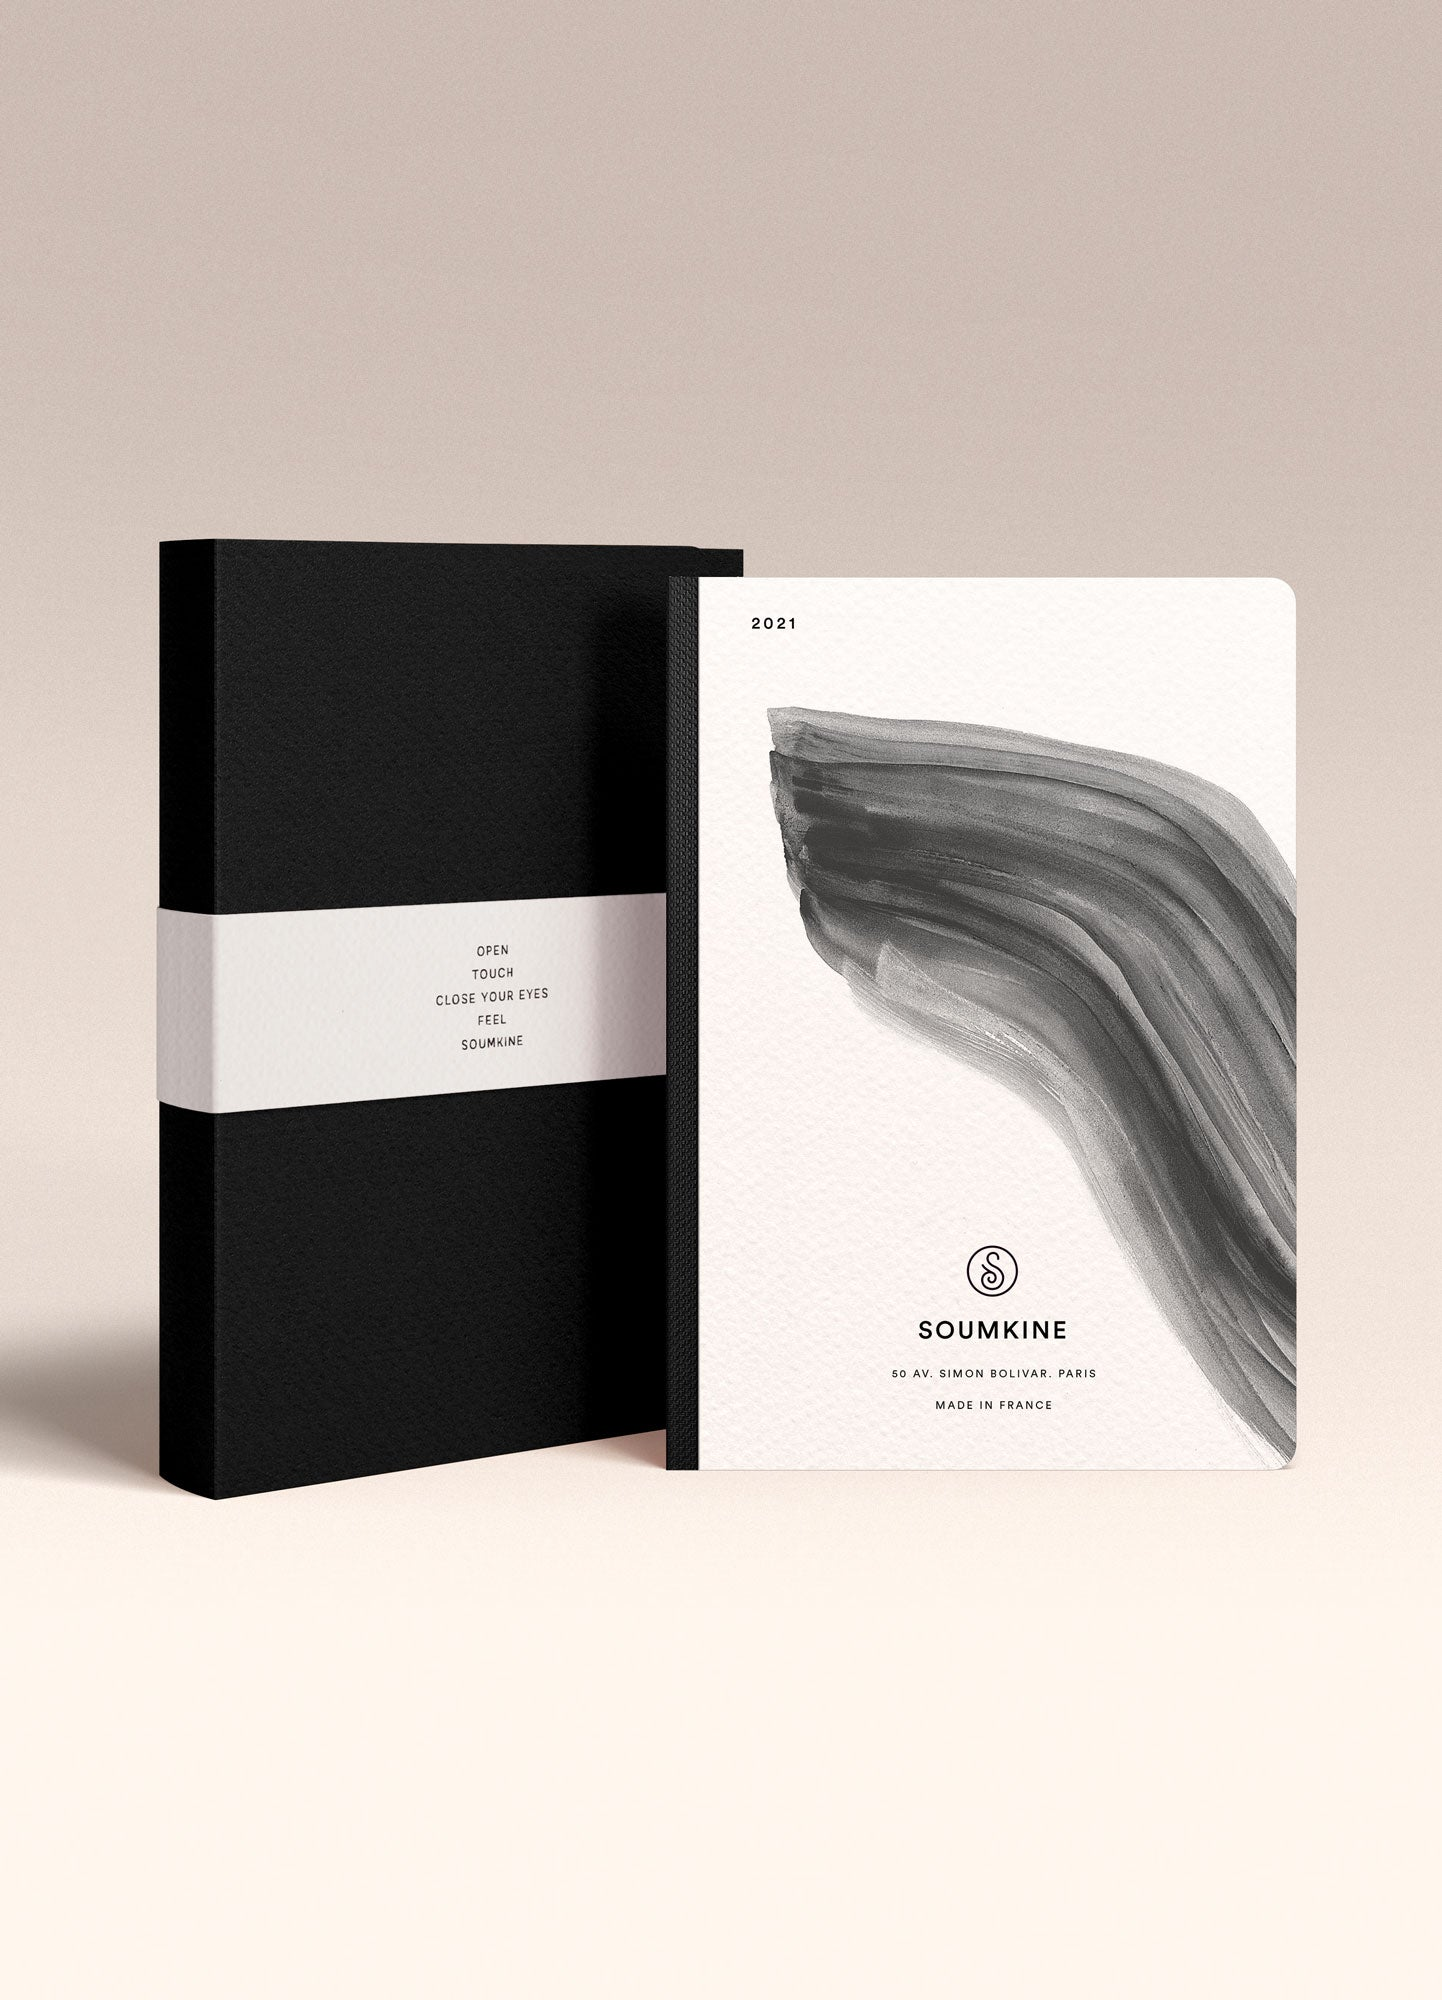 """Untitled 06"" by Anna Chask. 2021 Weekly planner A5 Size. 100% Cotton Paper"